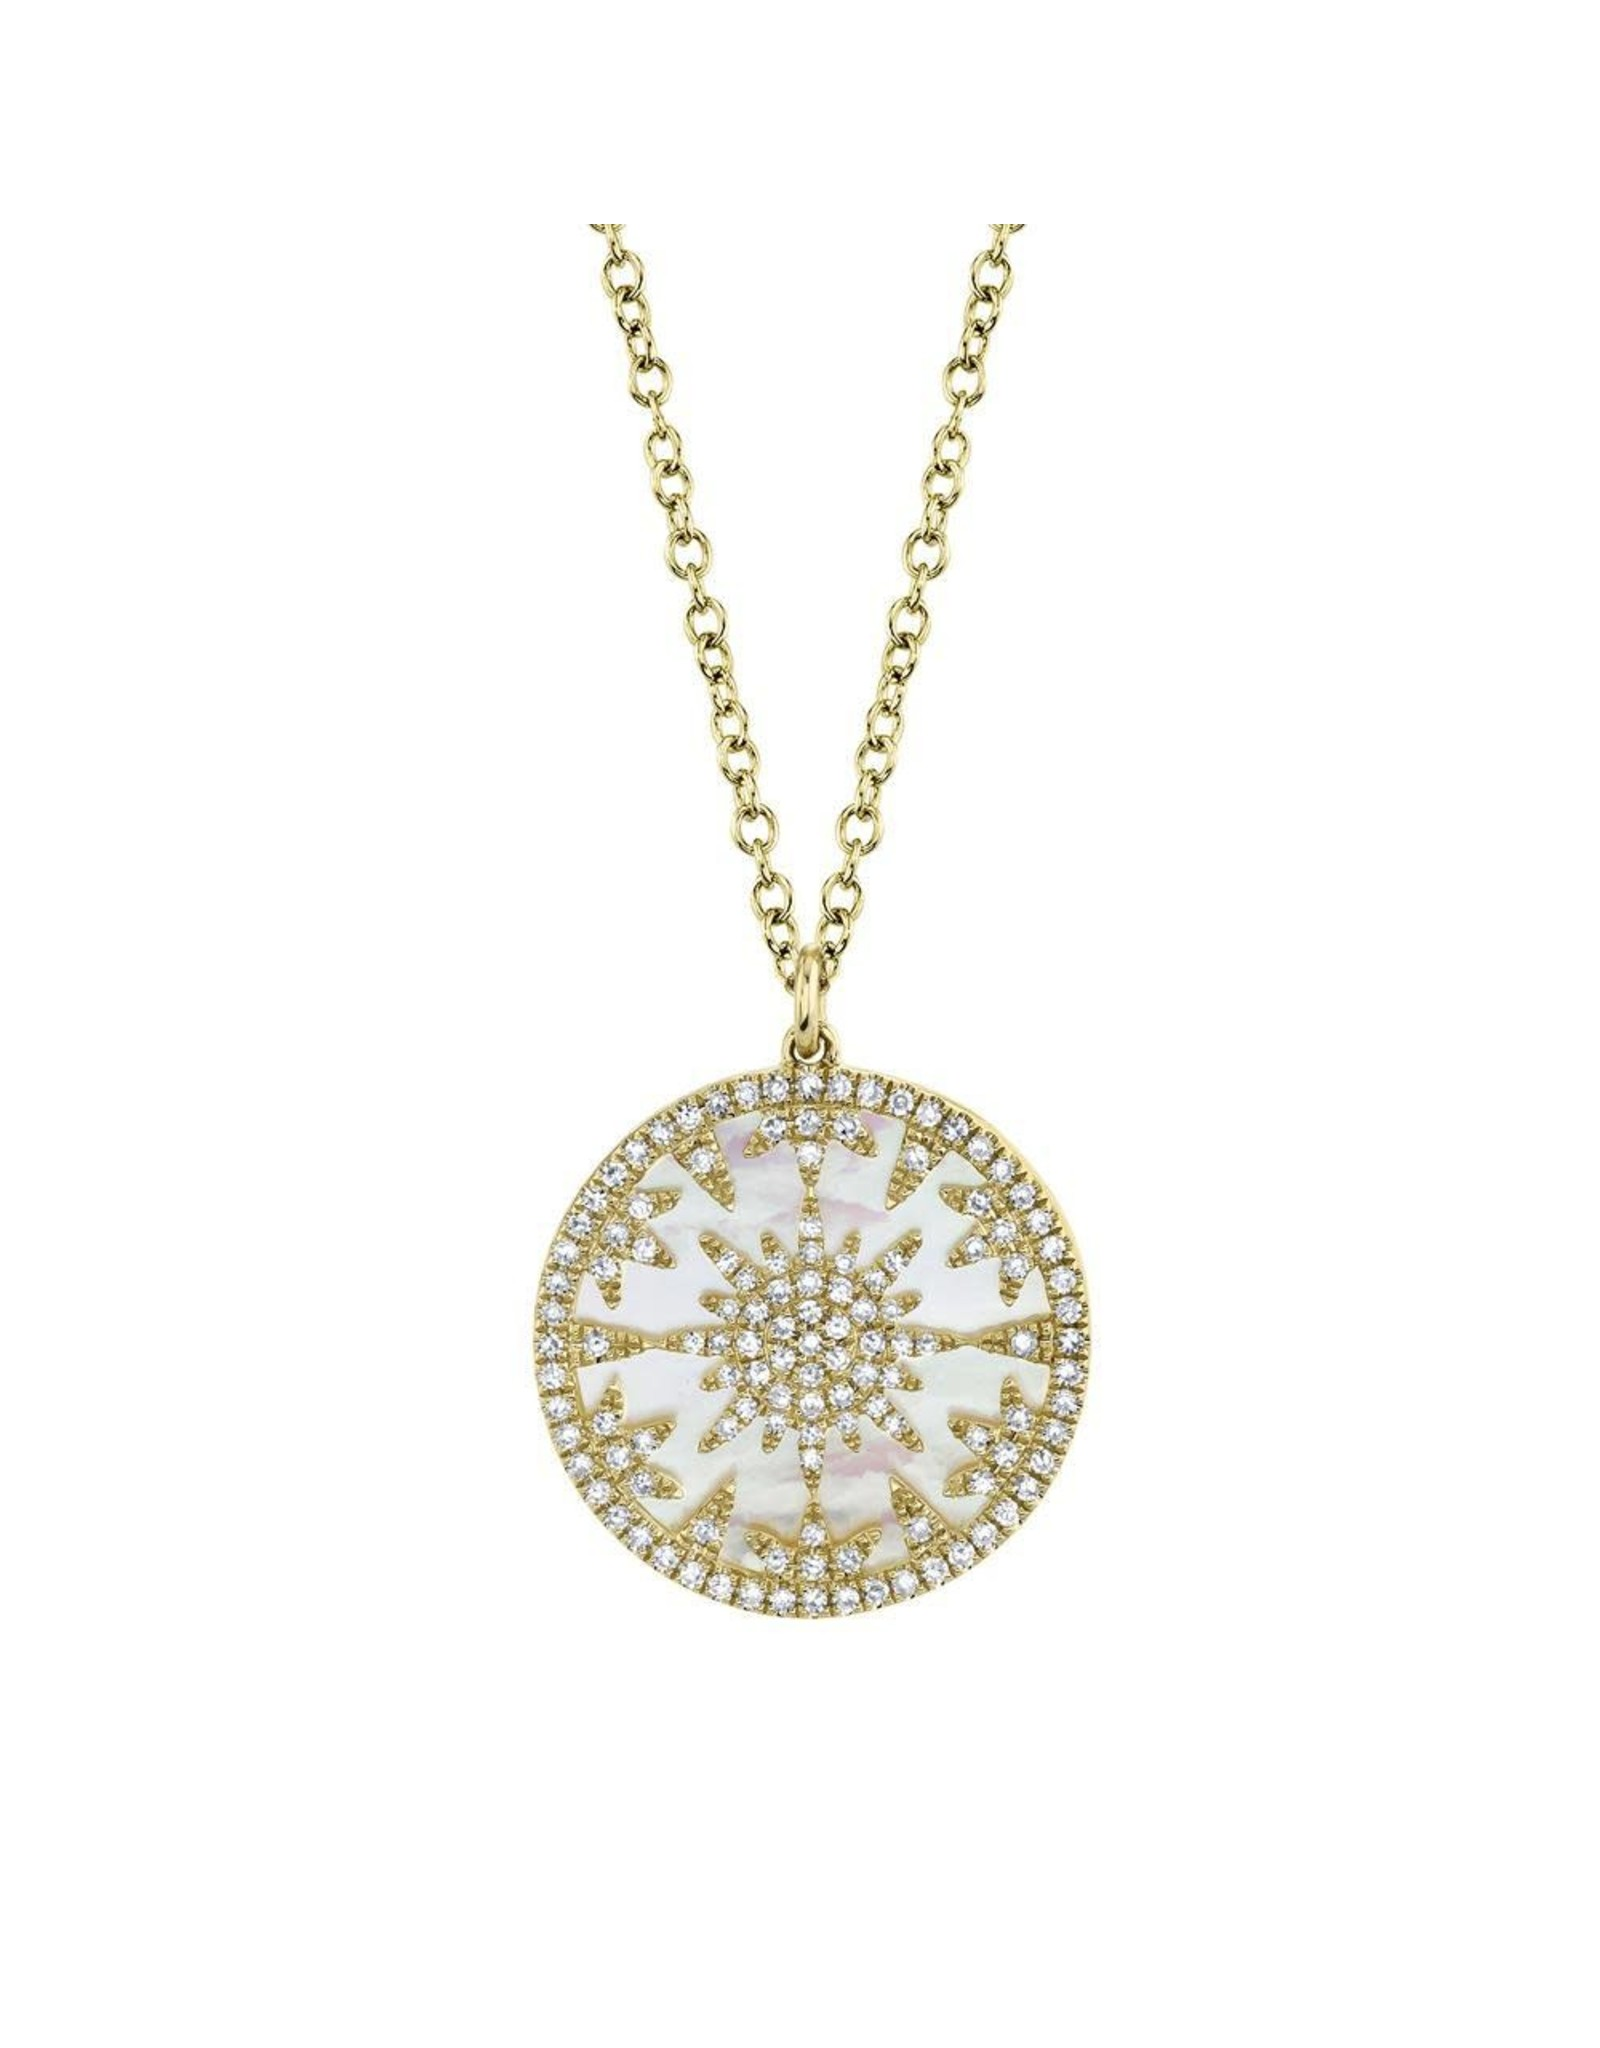 14K Yellow Gold Mother of Pearl and Diamond Medallion Necklace, D: 0.32ct, P: 2.88ct